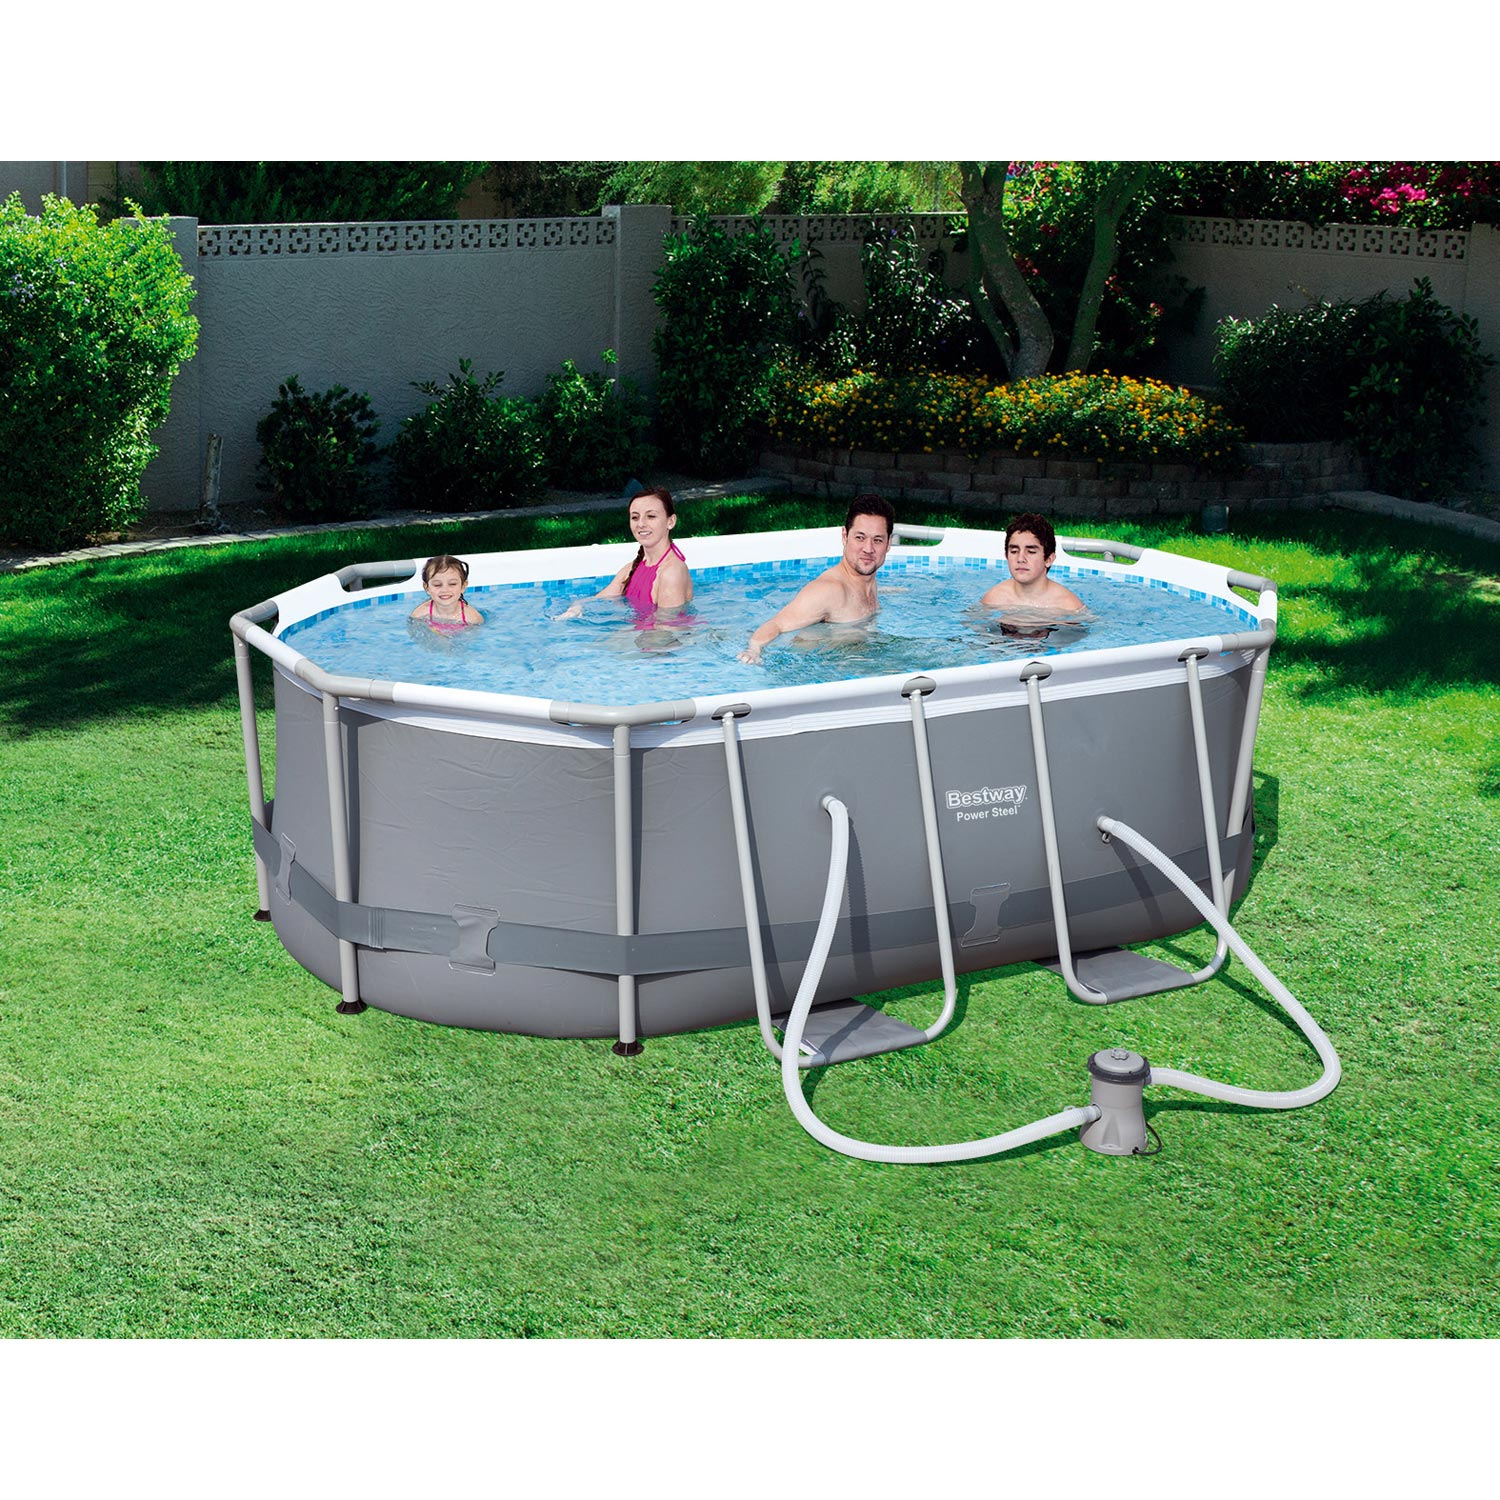 Piscine hors sol autoportante tubulaire bestway l 3 x l 2 for Piscine hors sol imposable